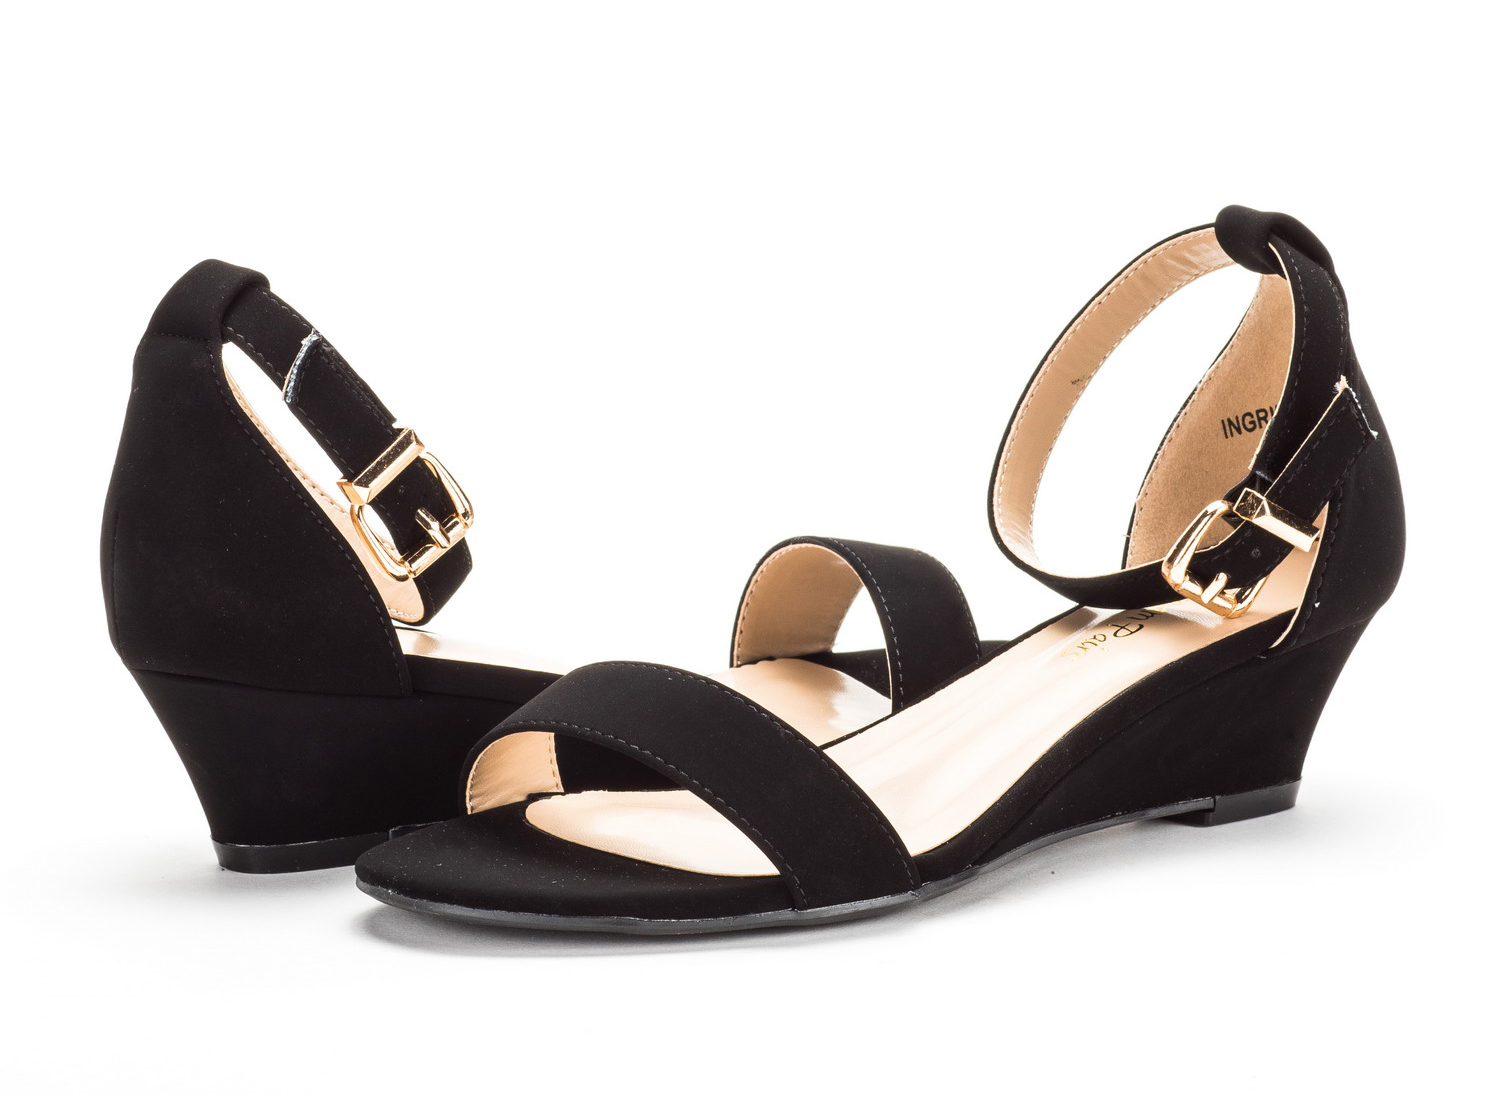 DREAM-PAIRS-Women-039-s-Ankle-Strap-Low-Wedge-Sandals-Open-Toe-Casual-Dress-Shoes thumbnail 11